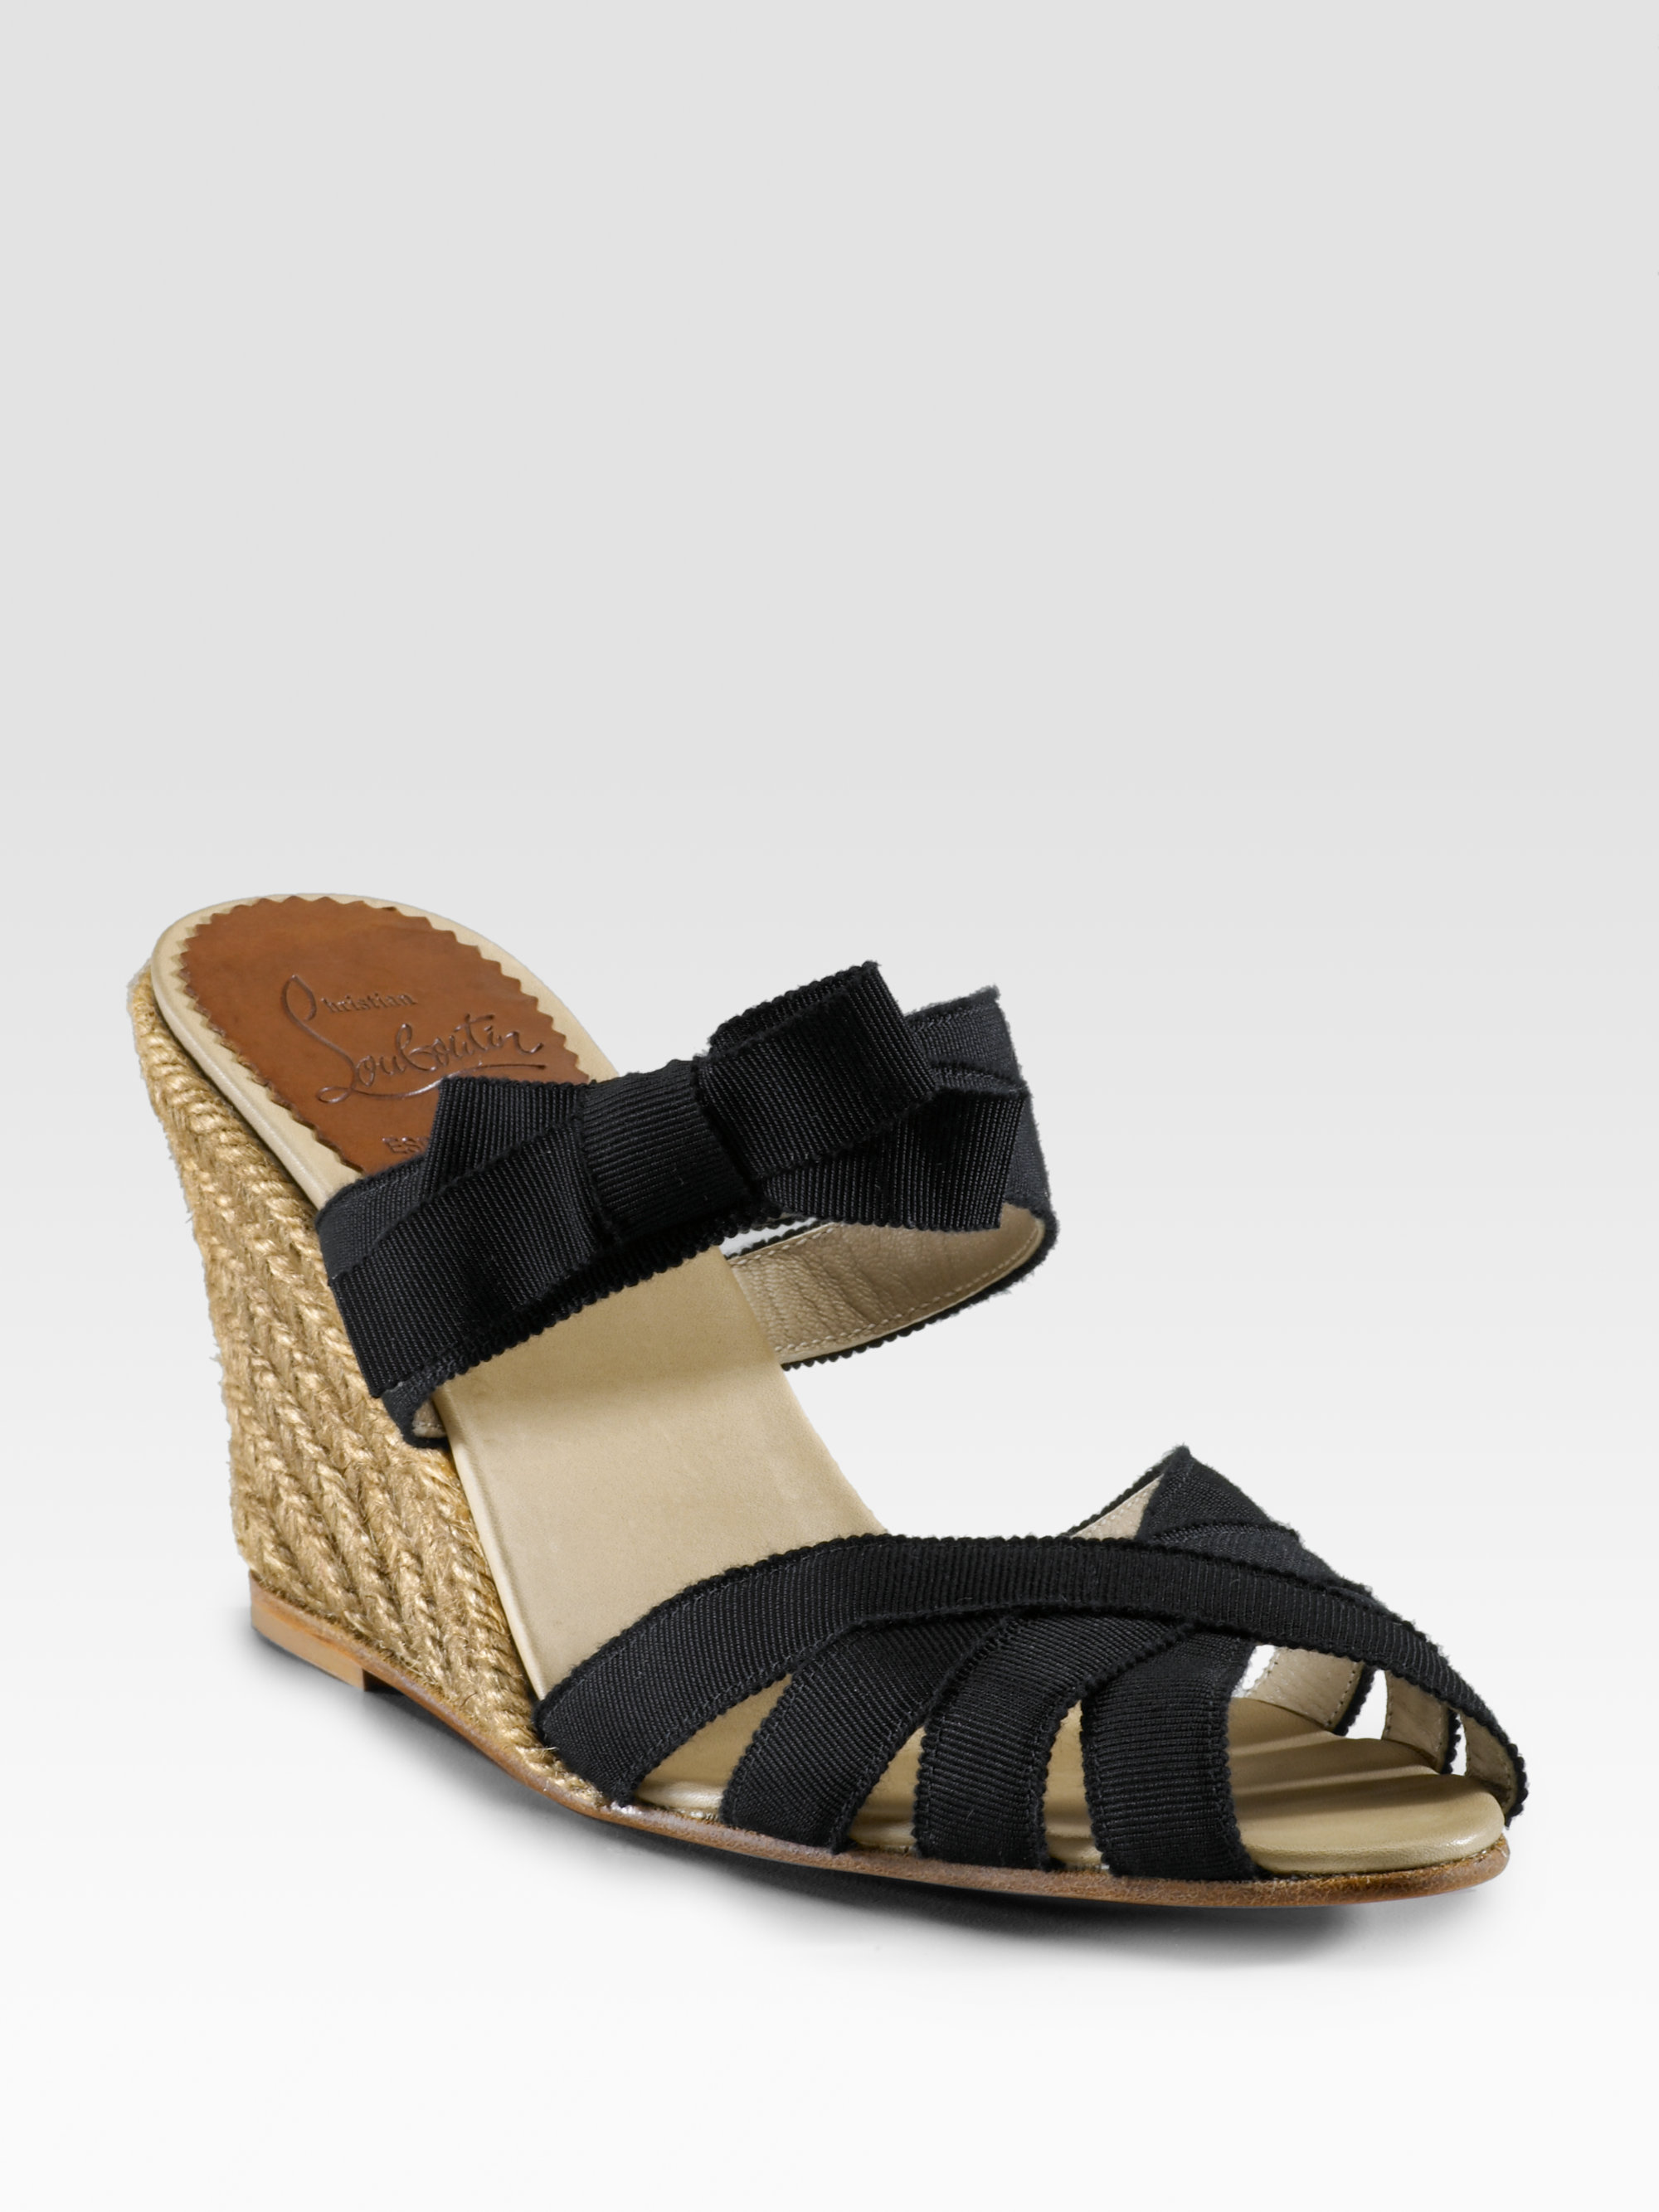 knock of shoes - christian louboutin satin espadrille wedges Black round toes | The ...